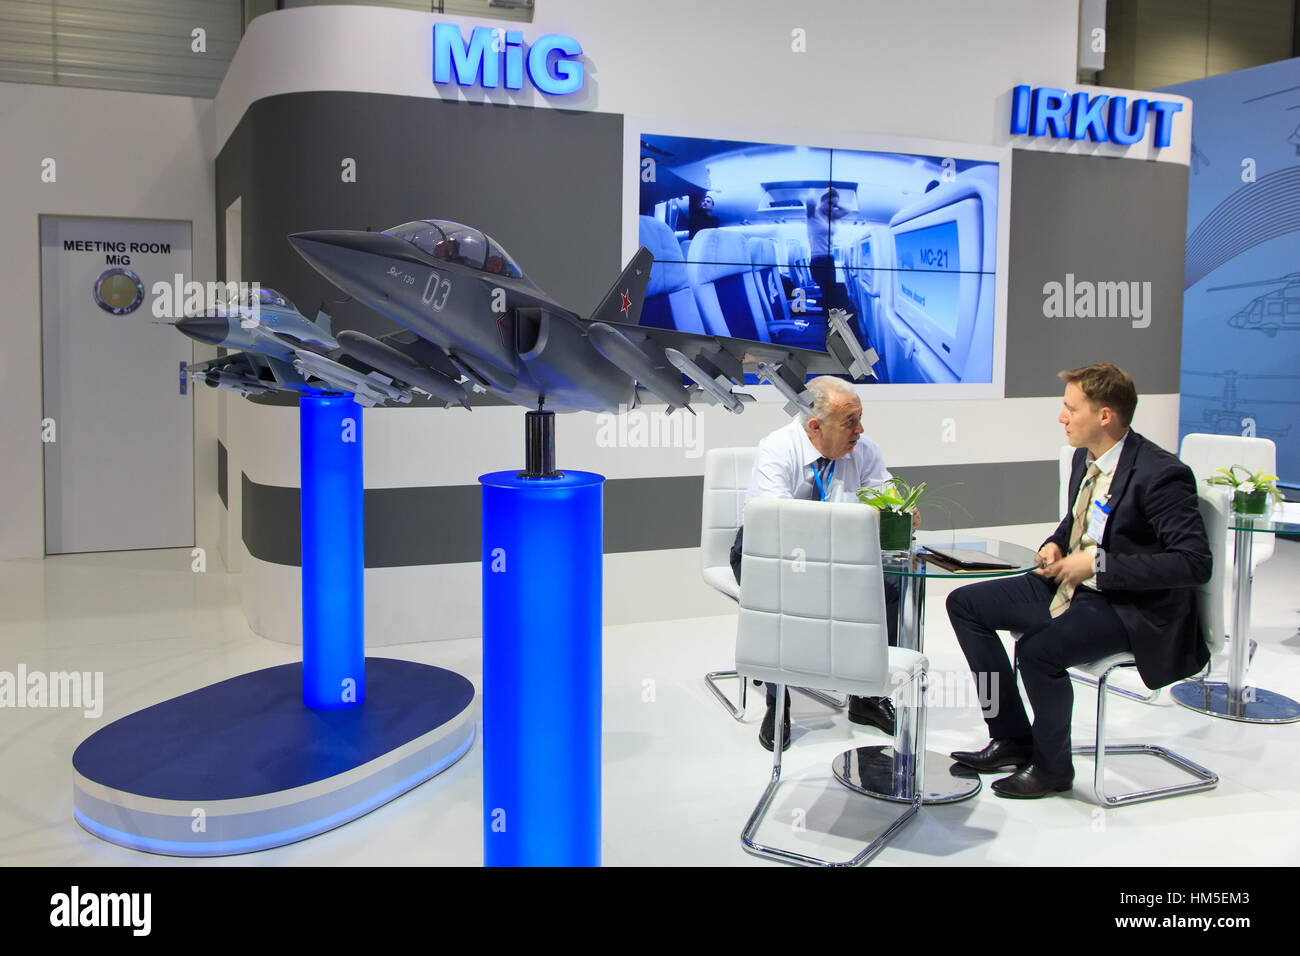 BERLIN, GERMANY - MAY 21: Russian aircraft manufacturers MiG and Irkut stand at the International Aerospace Exhibition - Stock Image